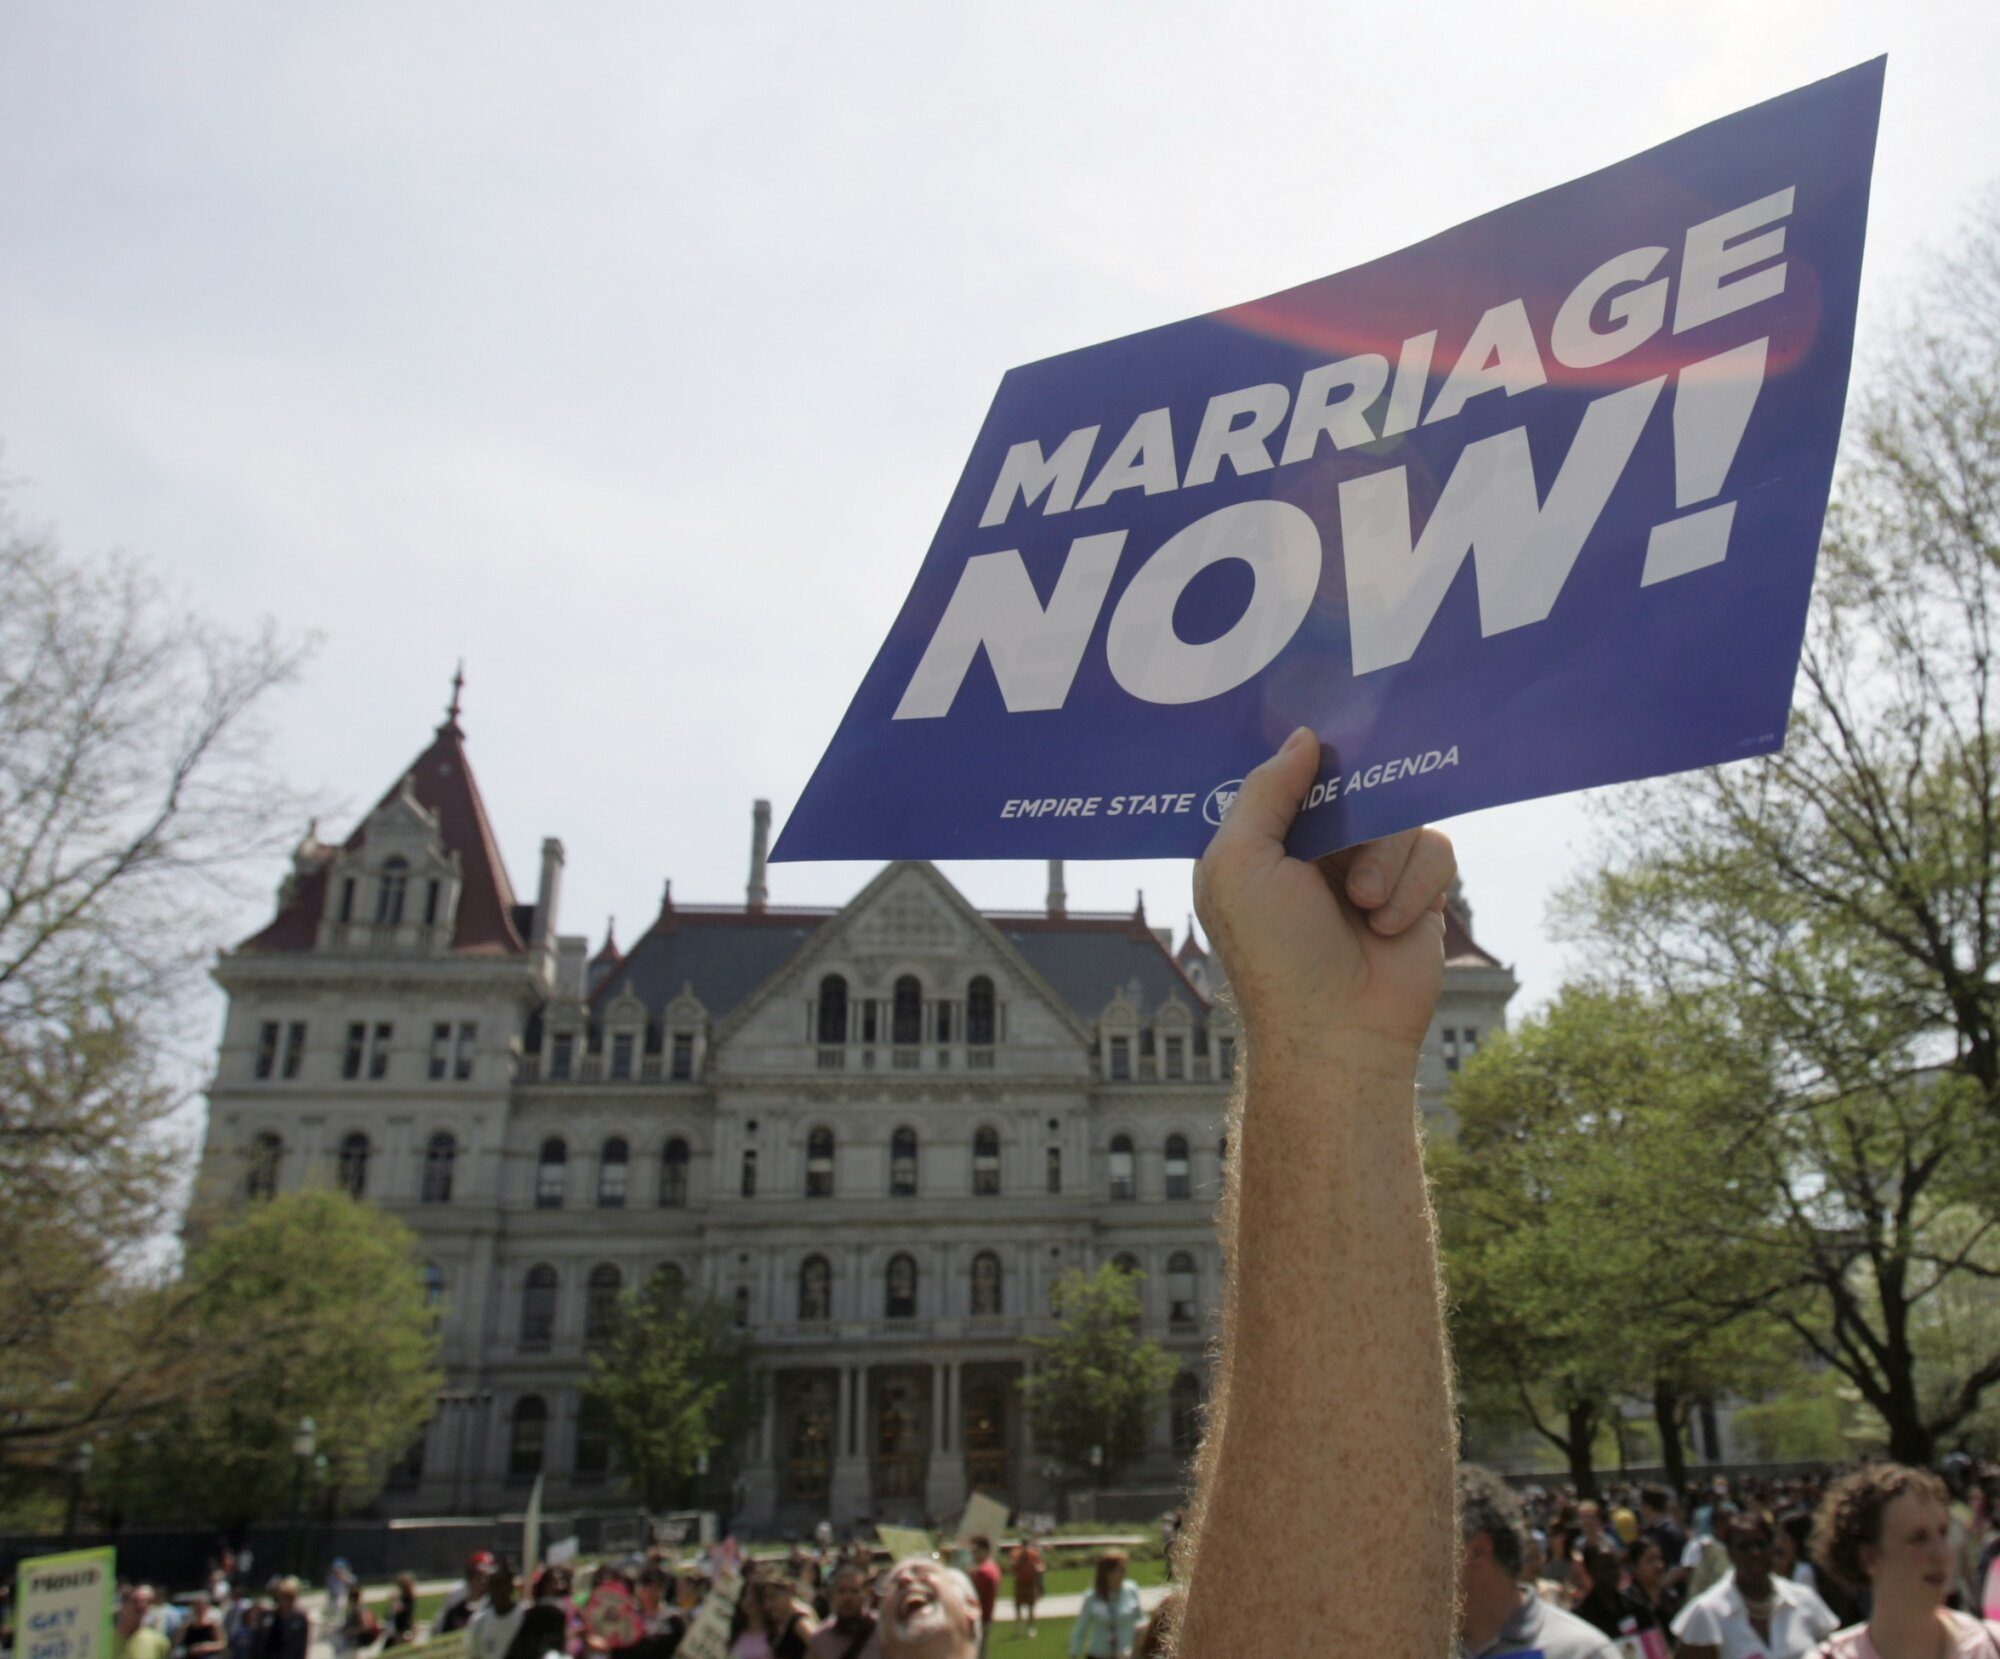 Prop 8 & DOMA To Receive Hearings by Supreme Court!